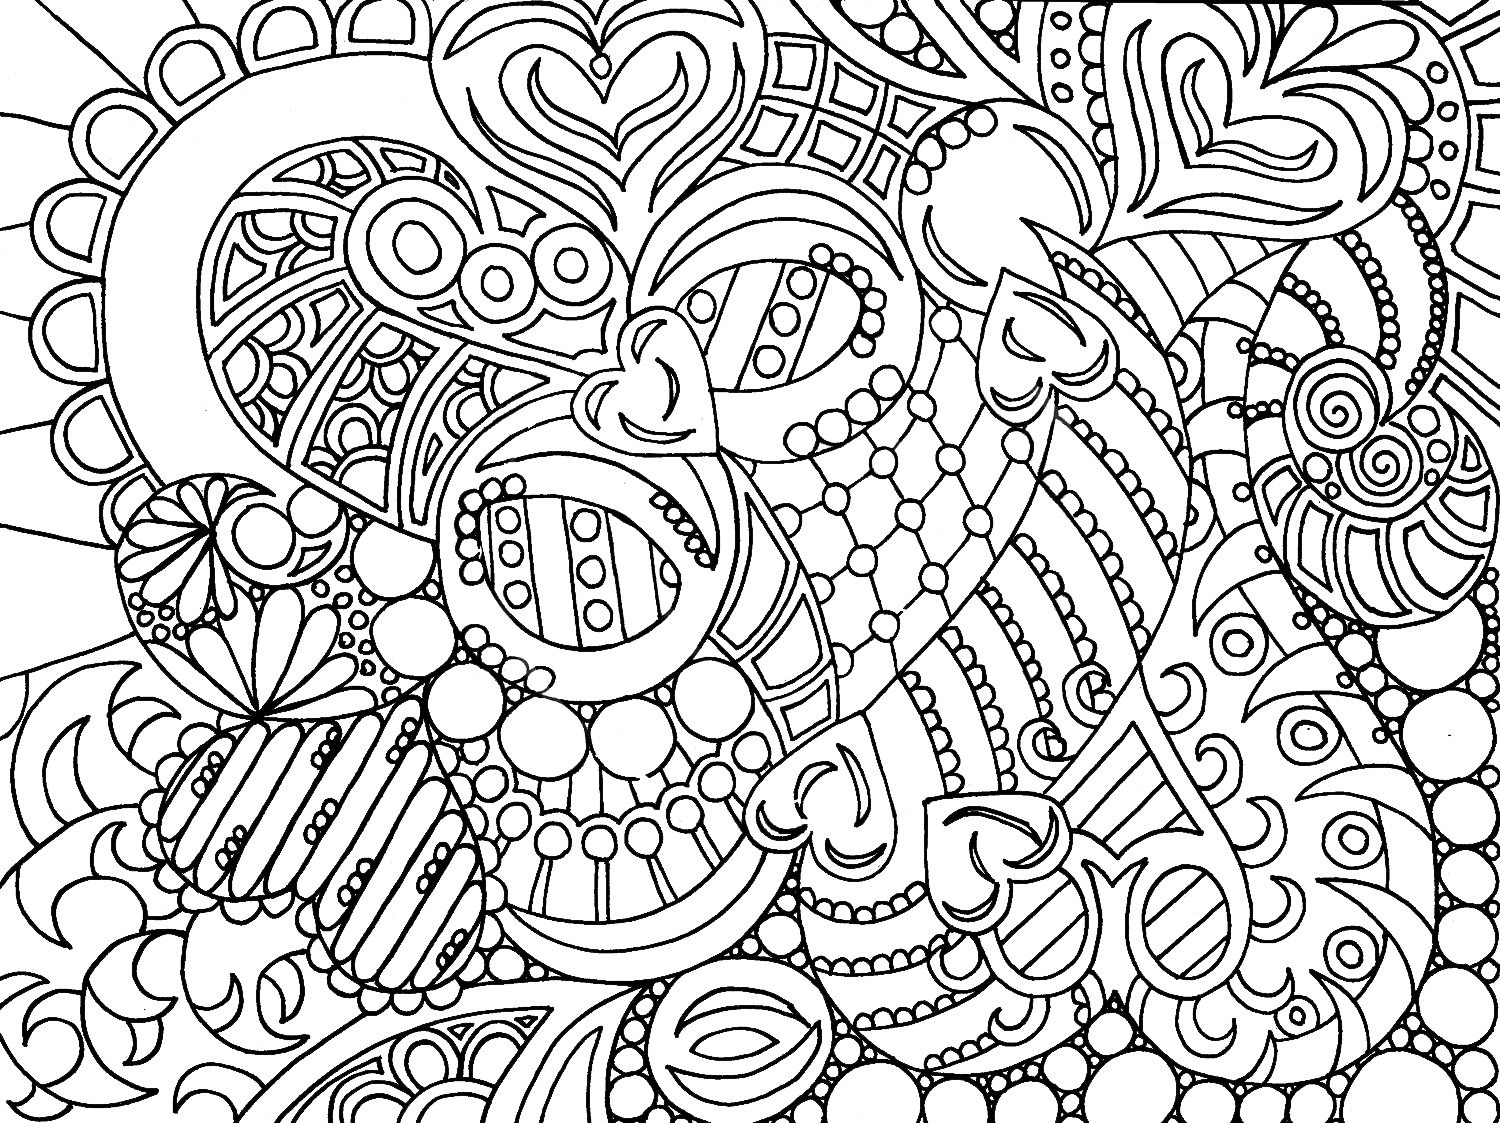 Christmas Colouring Pages Mindfulness With Awesome Image ColinBookman